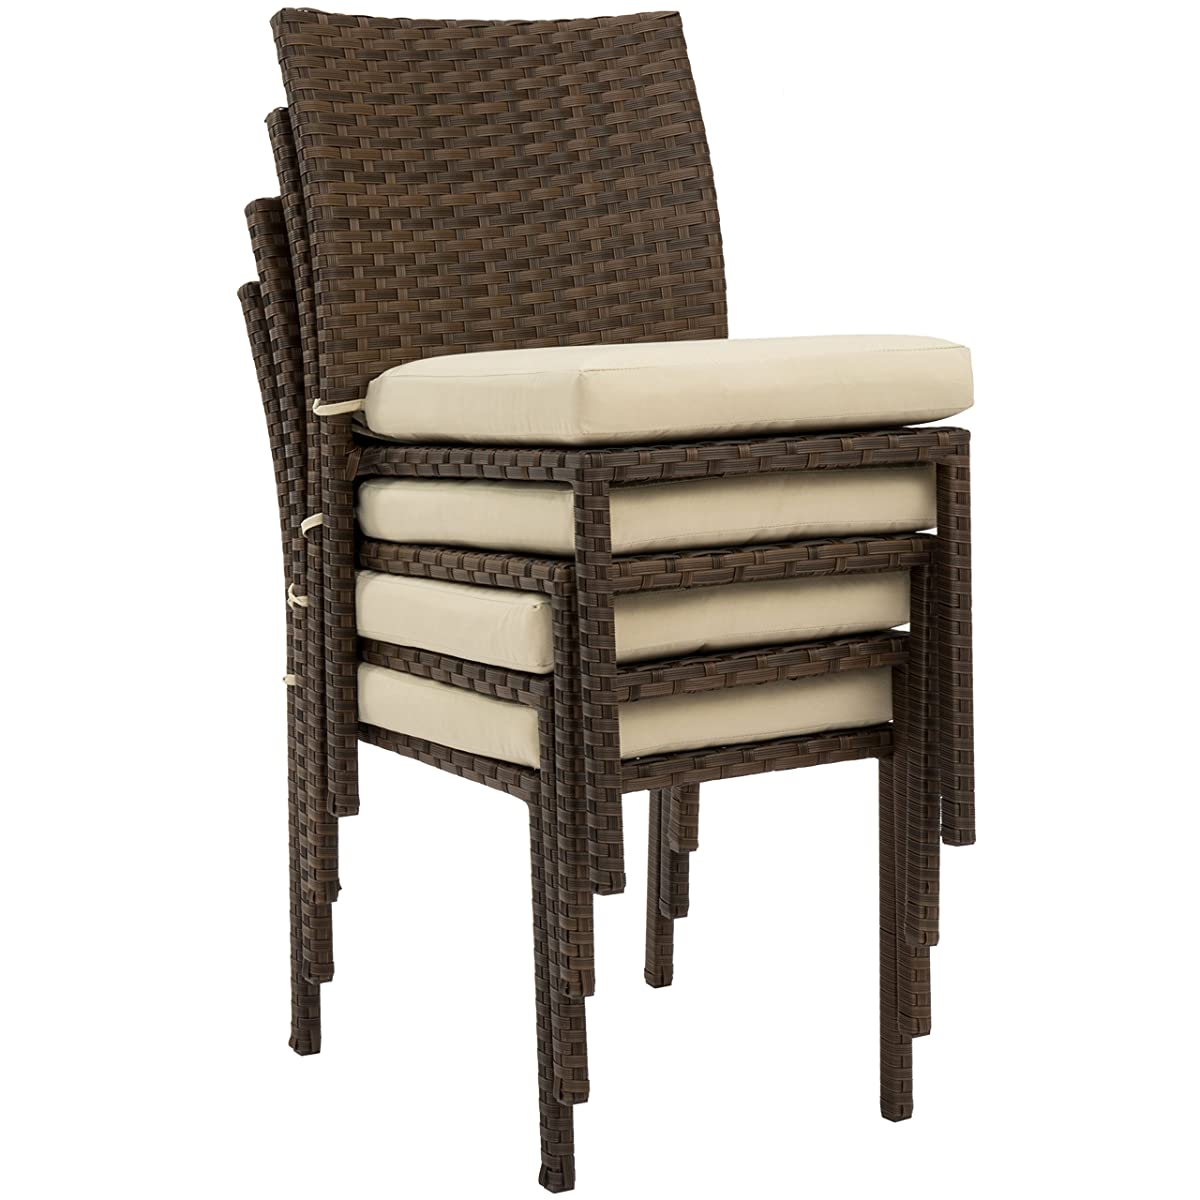 Best Choice Products Outdoor Wicker Patio Stacking Chairs Set of 4 -Brown